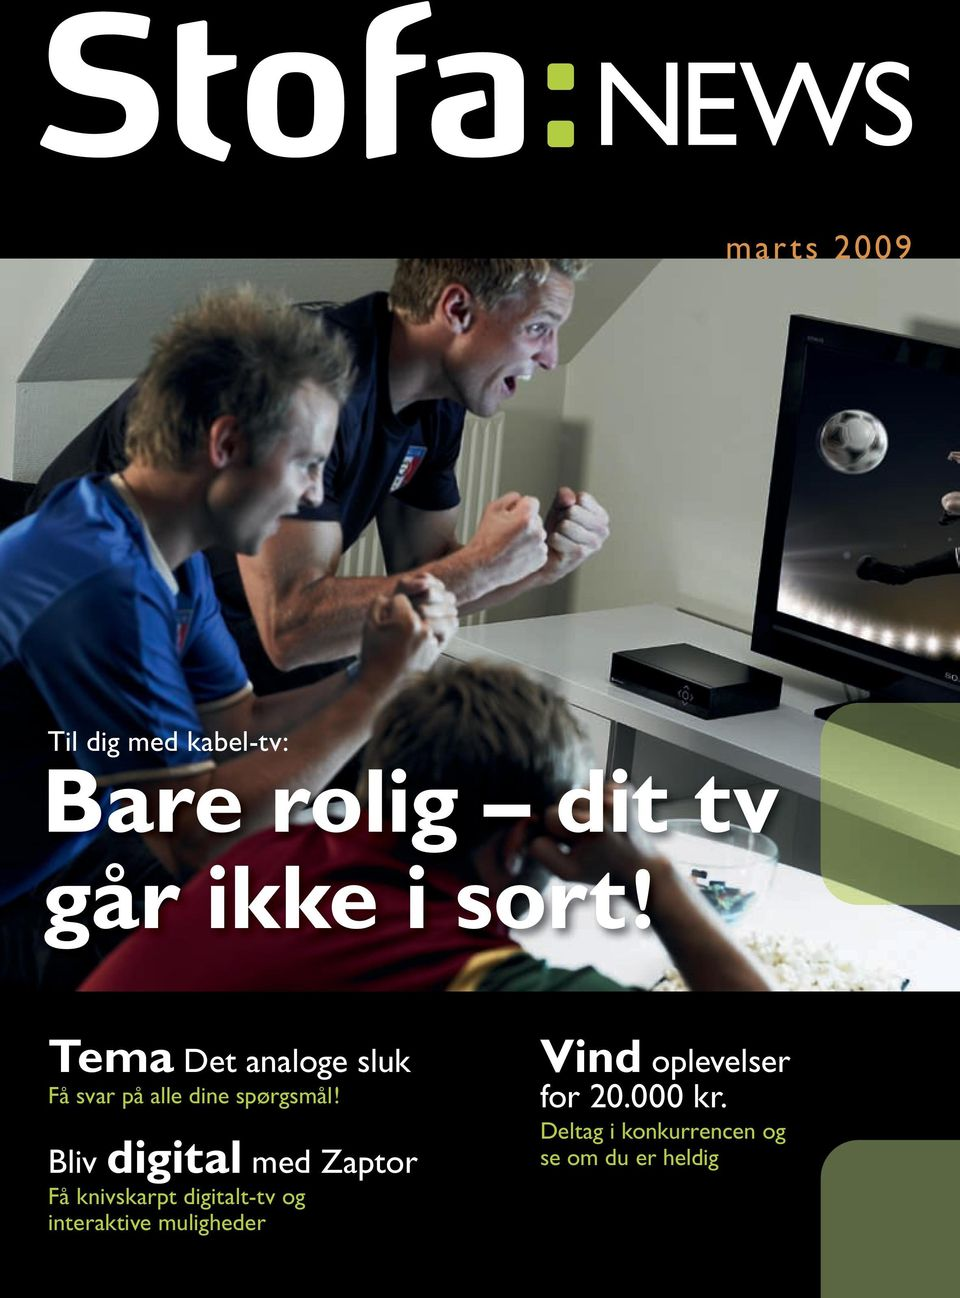 Bliv digital med Zaptor Få knivskarpt digitalt-tv og interaktive